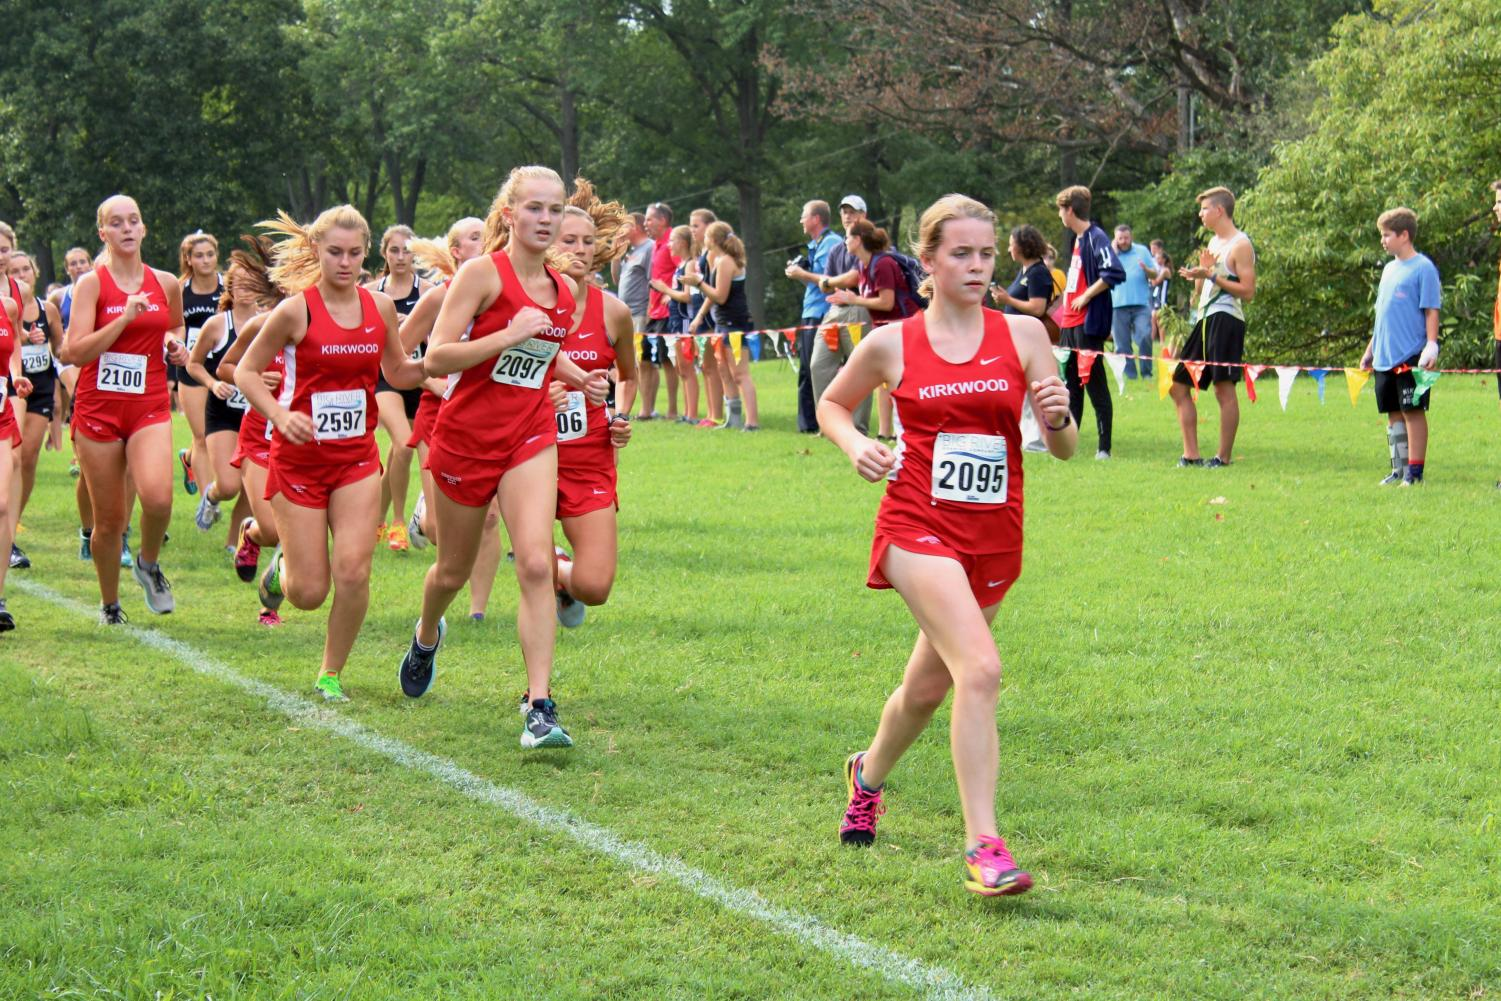 Meg+Murphy%2C+junior%2C+leads+a+pack+of+Kirkwood+runners+at+the+start+of+the+junior-senior+race.+%22%5BMy+favorite+part+of+the+Webster+meet+was%5D+probably+just+being+able+to+stick+with+my+other+teammates+and+push+myself+to+the+front+towards+the+end+of+the+race%2C%22+Meg+Murphy%2C+junior%2C+said.+%22%5BBeing+the+first+Kirkwood+girl+to+finish%5D+felt+really+good%2C+I+felt+really+energized+in+the+end+and+it+helped+me+push+to+my+finish.%22